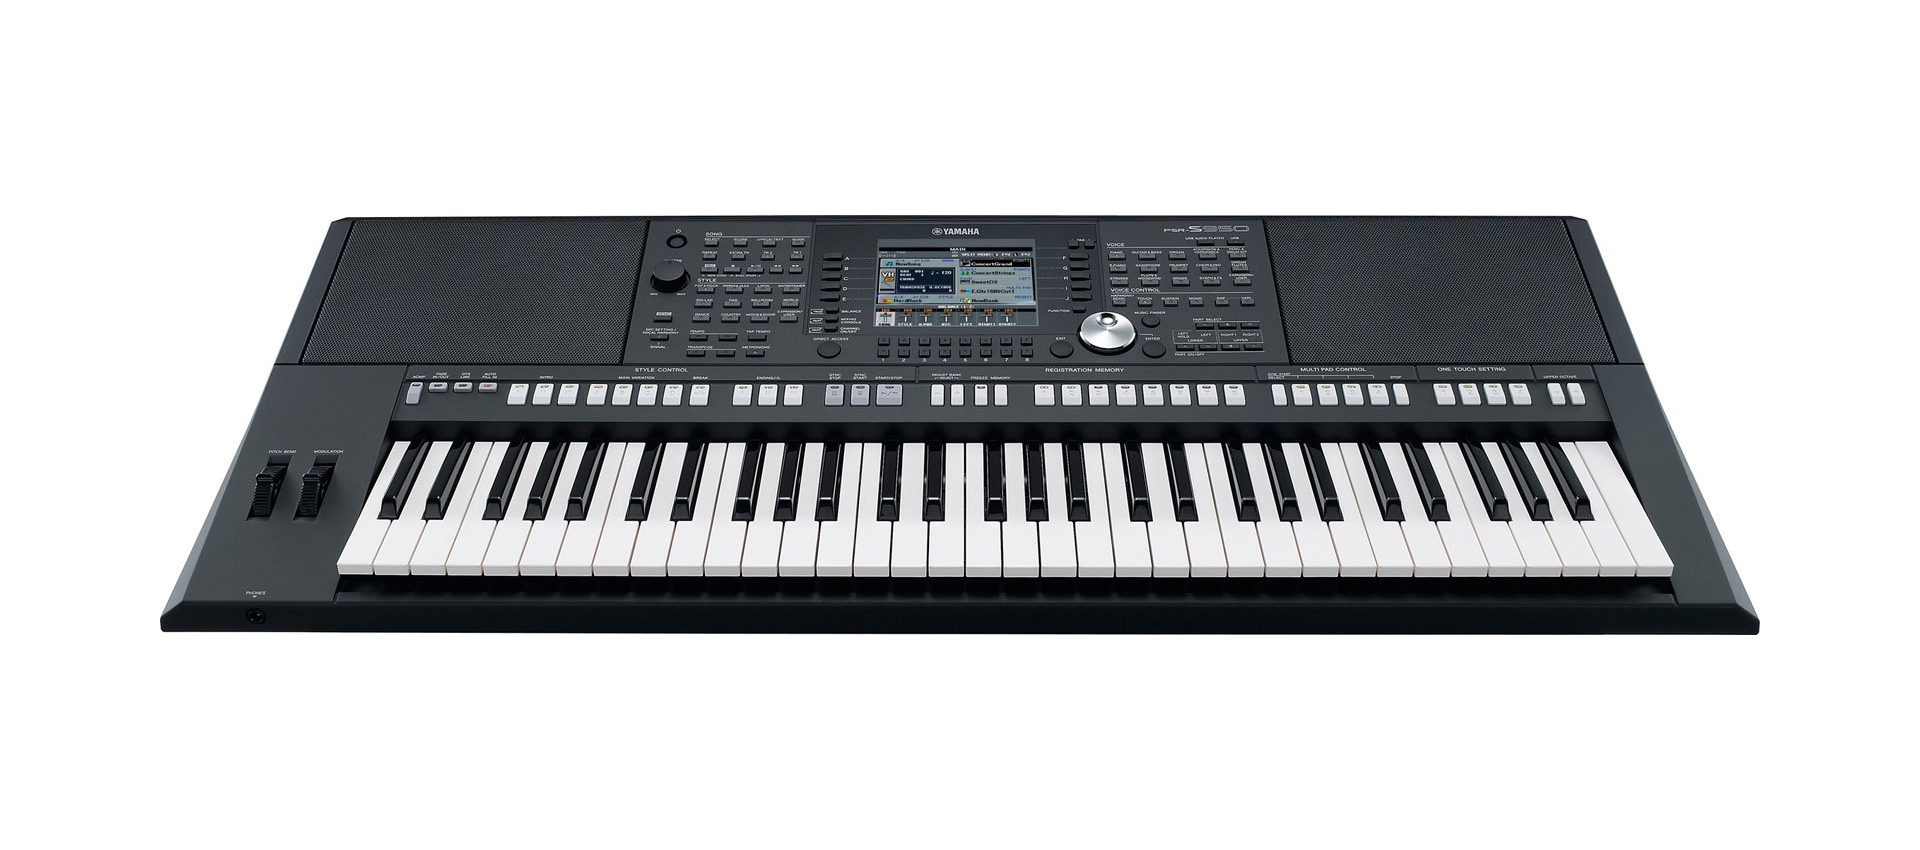 Yamaha psr s950 digital keyboard w24 pocket recorder for Yamaha psr s 950